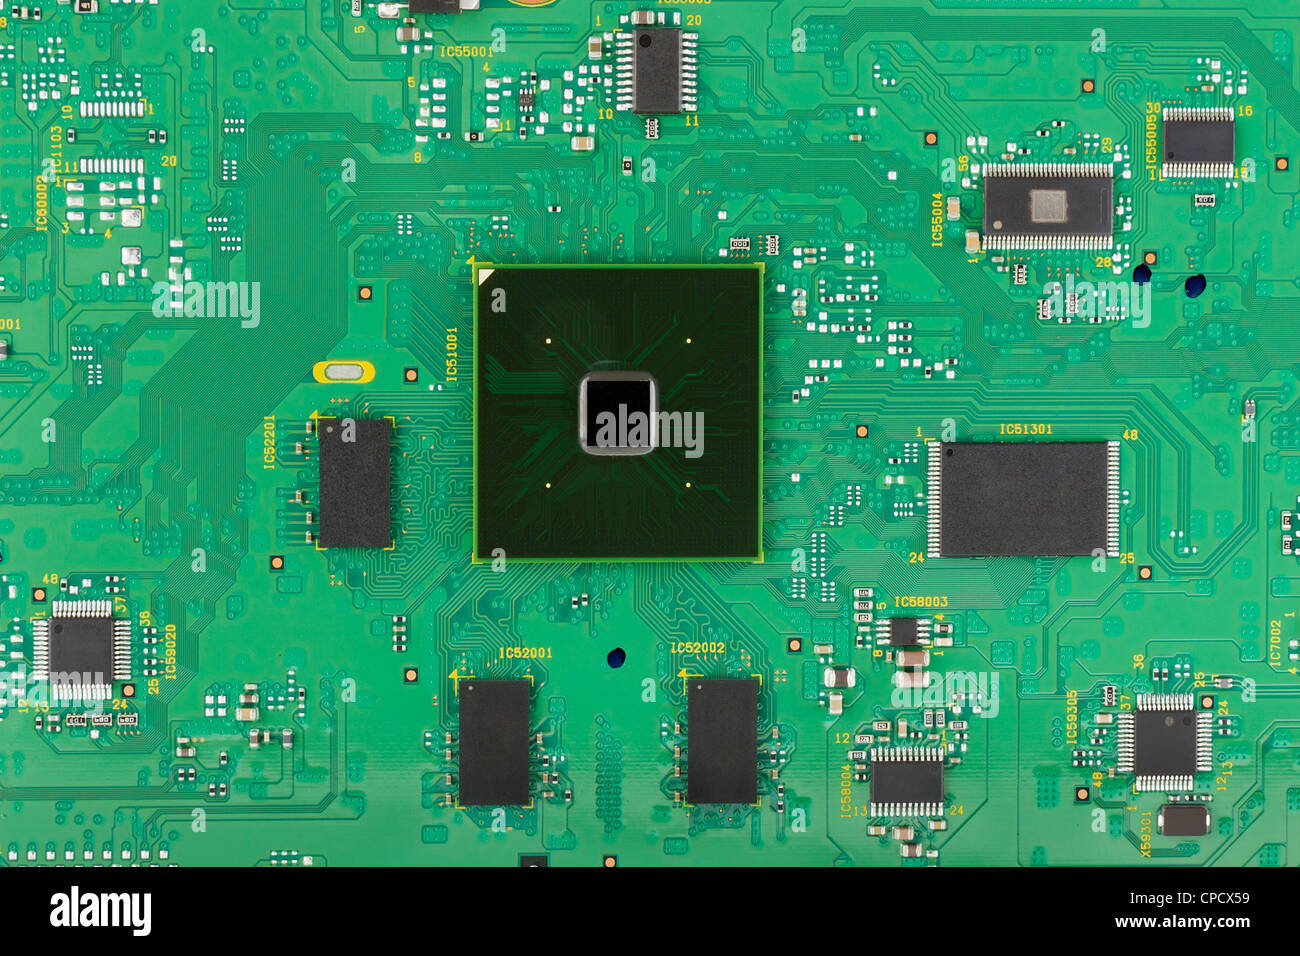 The Modern Printed Circuit Board With Electronic Components Macro Pcb Manufacturing Low Cost Background Mass Production Logos And Trademarks Removed